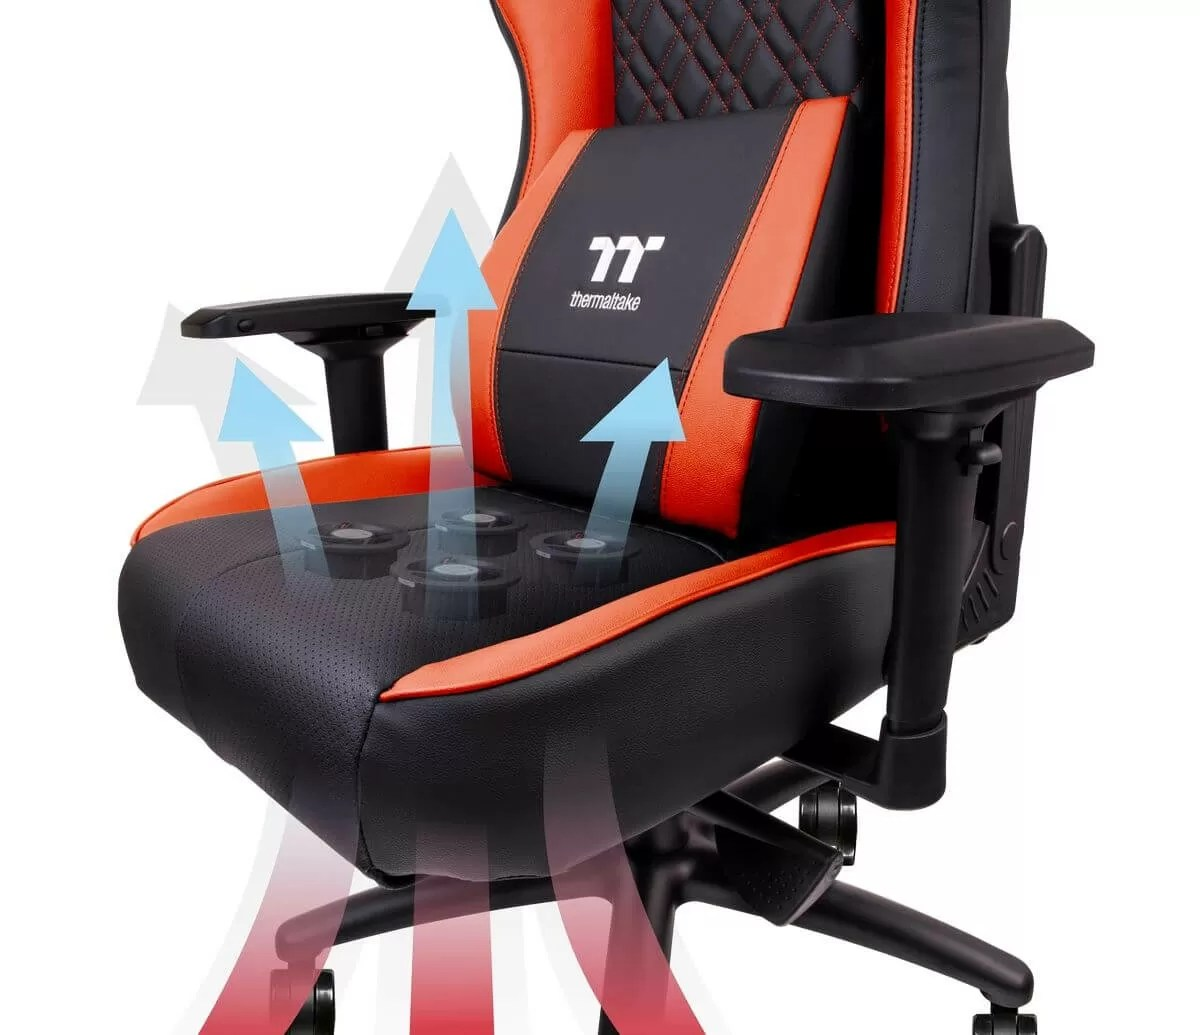 Gamer Chairs Thermaltake 39s New Gaming Chair Cools Your Butt With Four